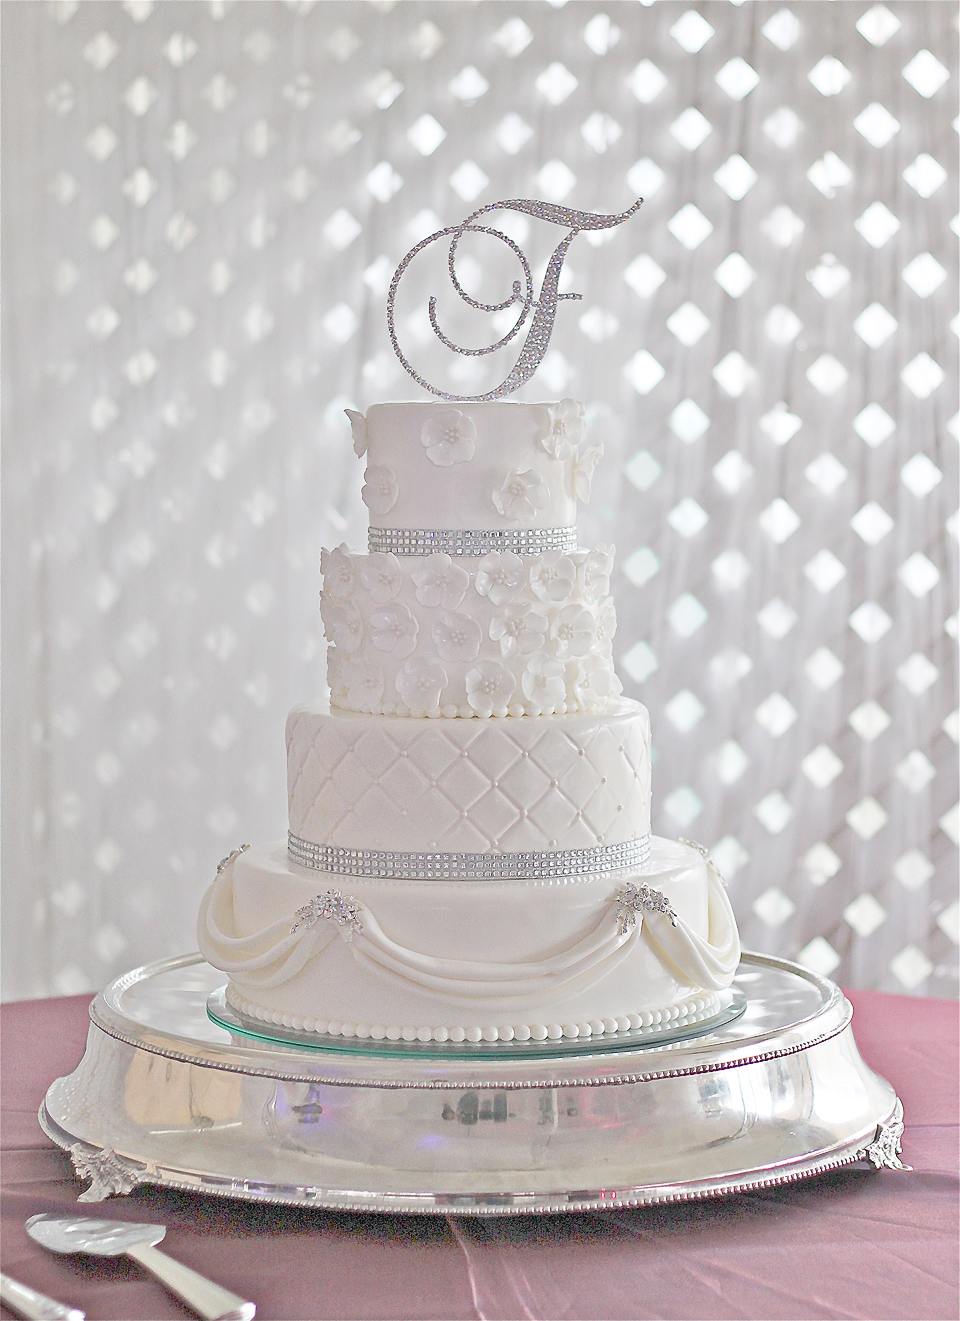 white wedding cakes images wedding cake gallery the couture cakery 27386